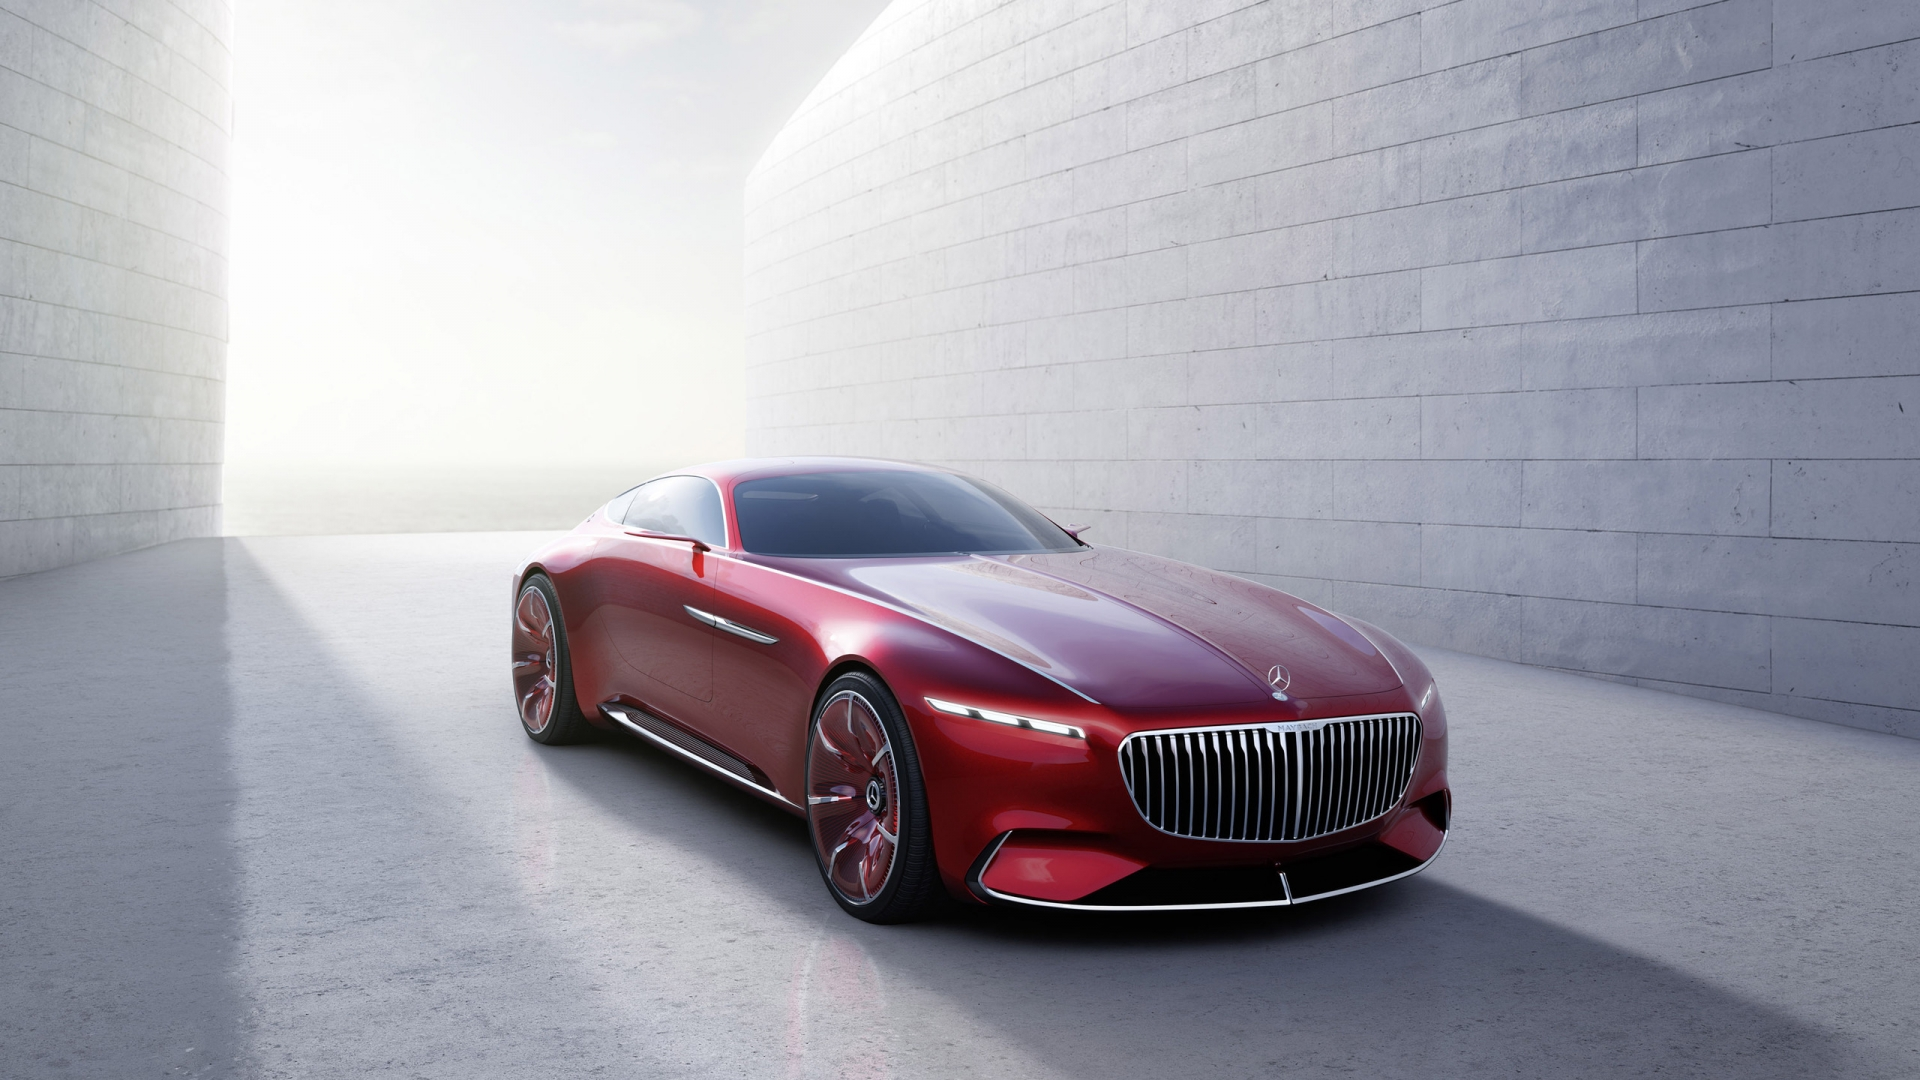 Maybach 6 2016 Concept Car for 1920 x 1080 HDTV 1080p resolution